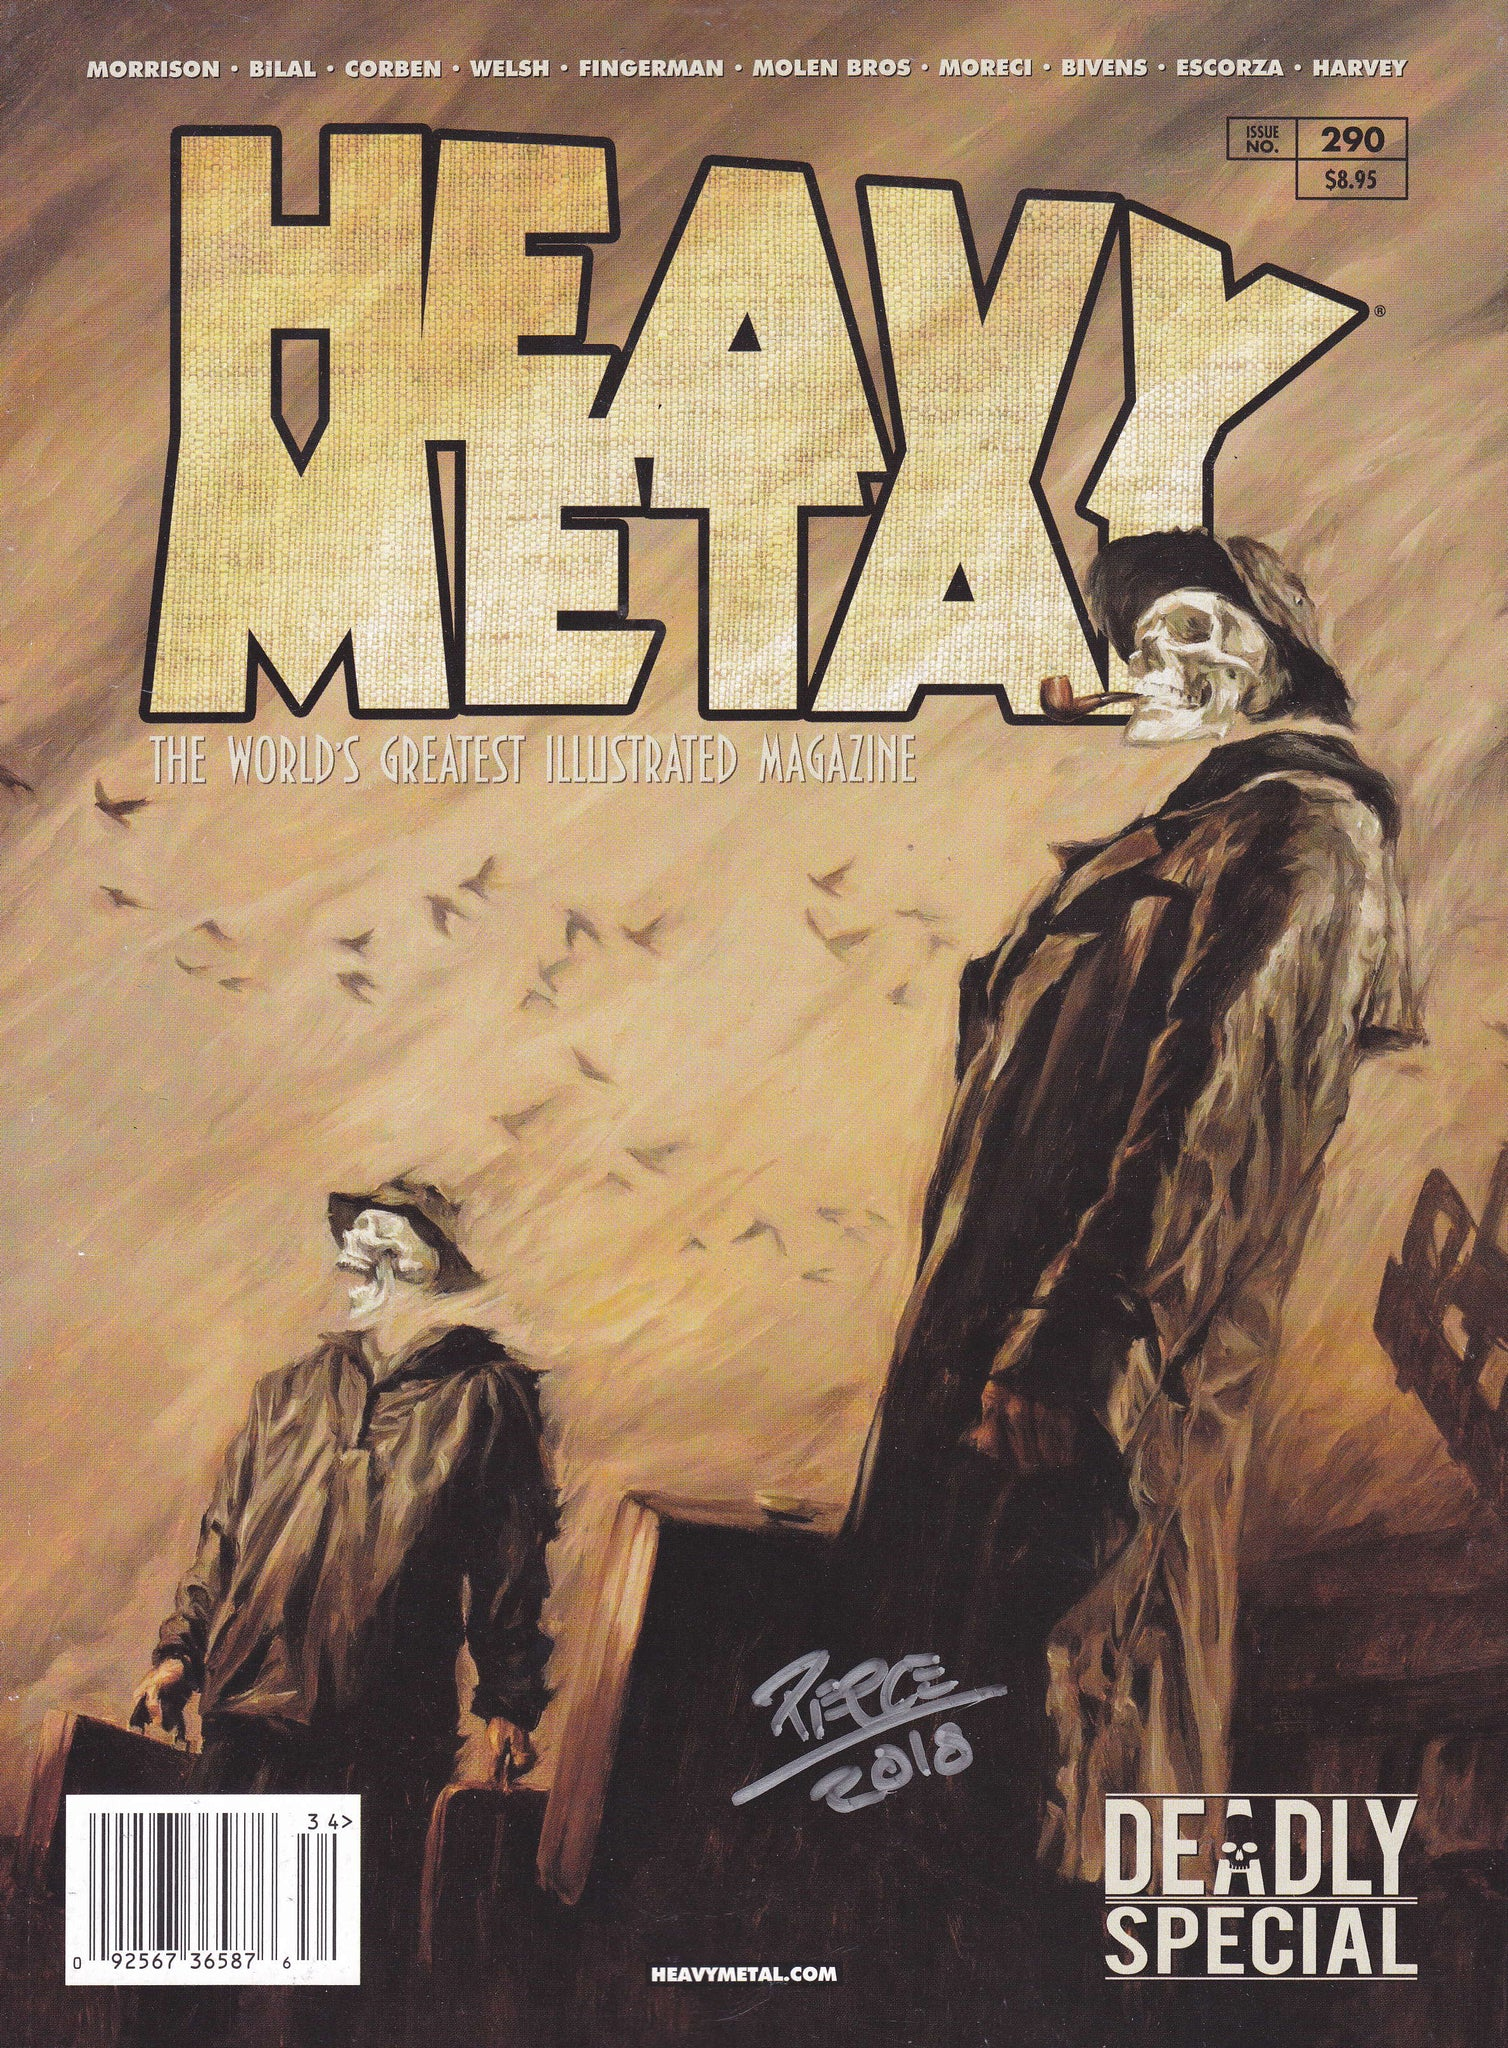 SIGNED Issue #290 Cover B - Shane Pierce (Signed by Shane Pierce)